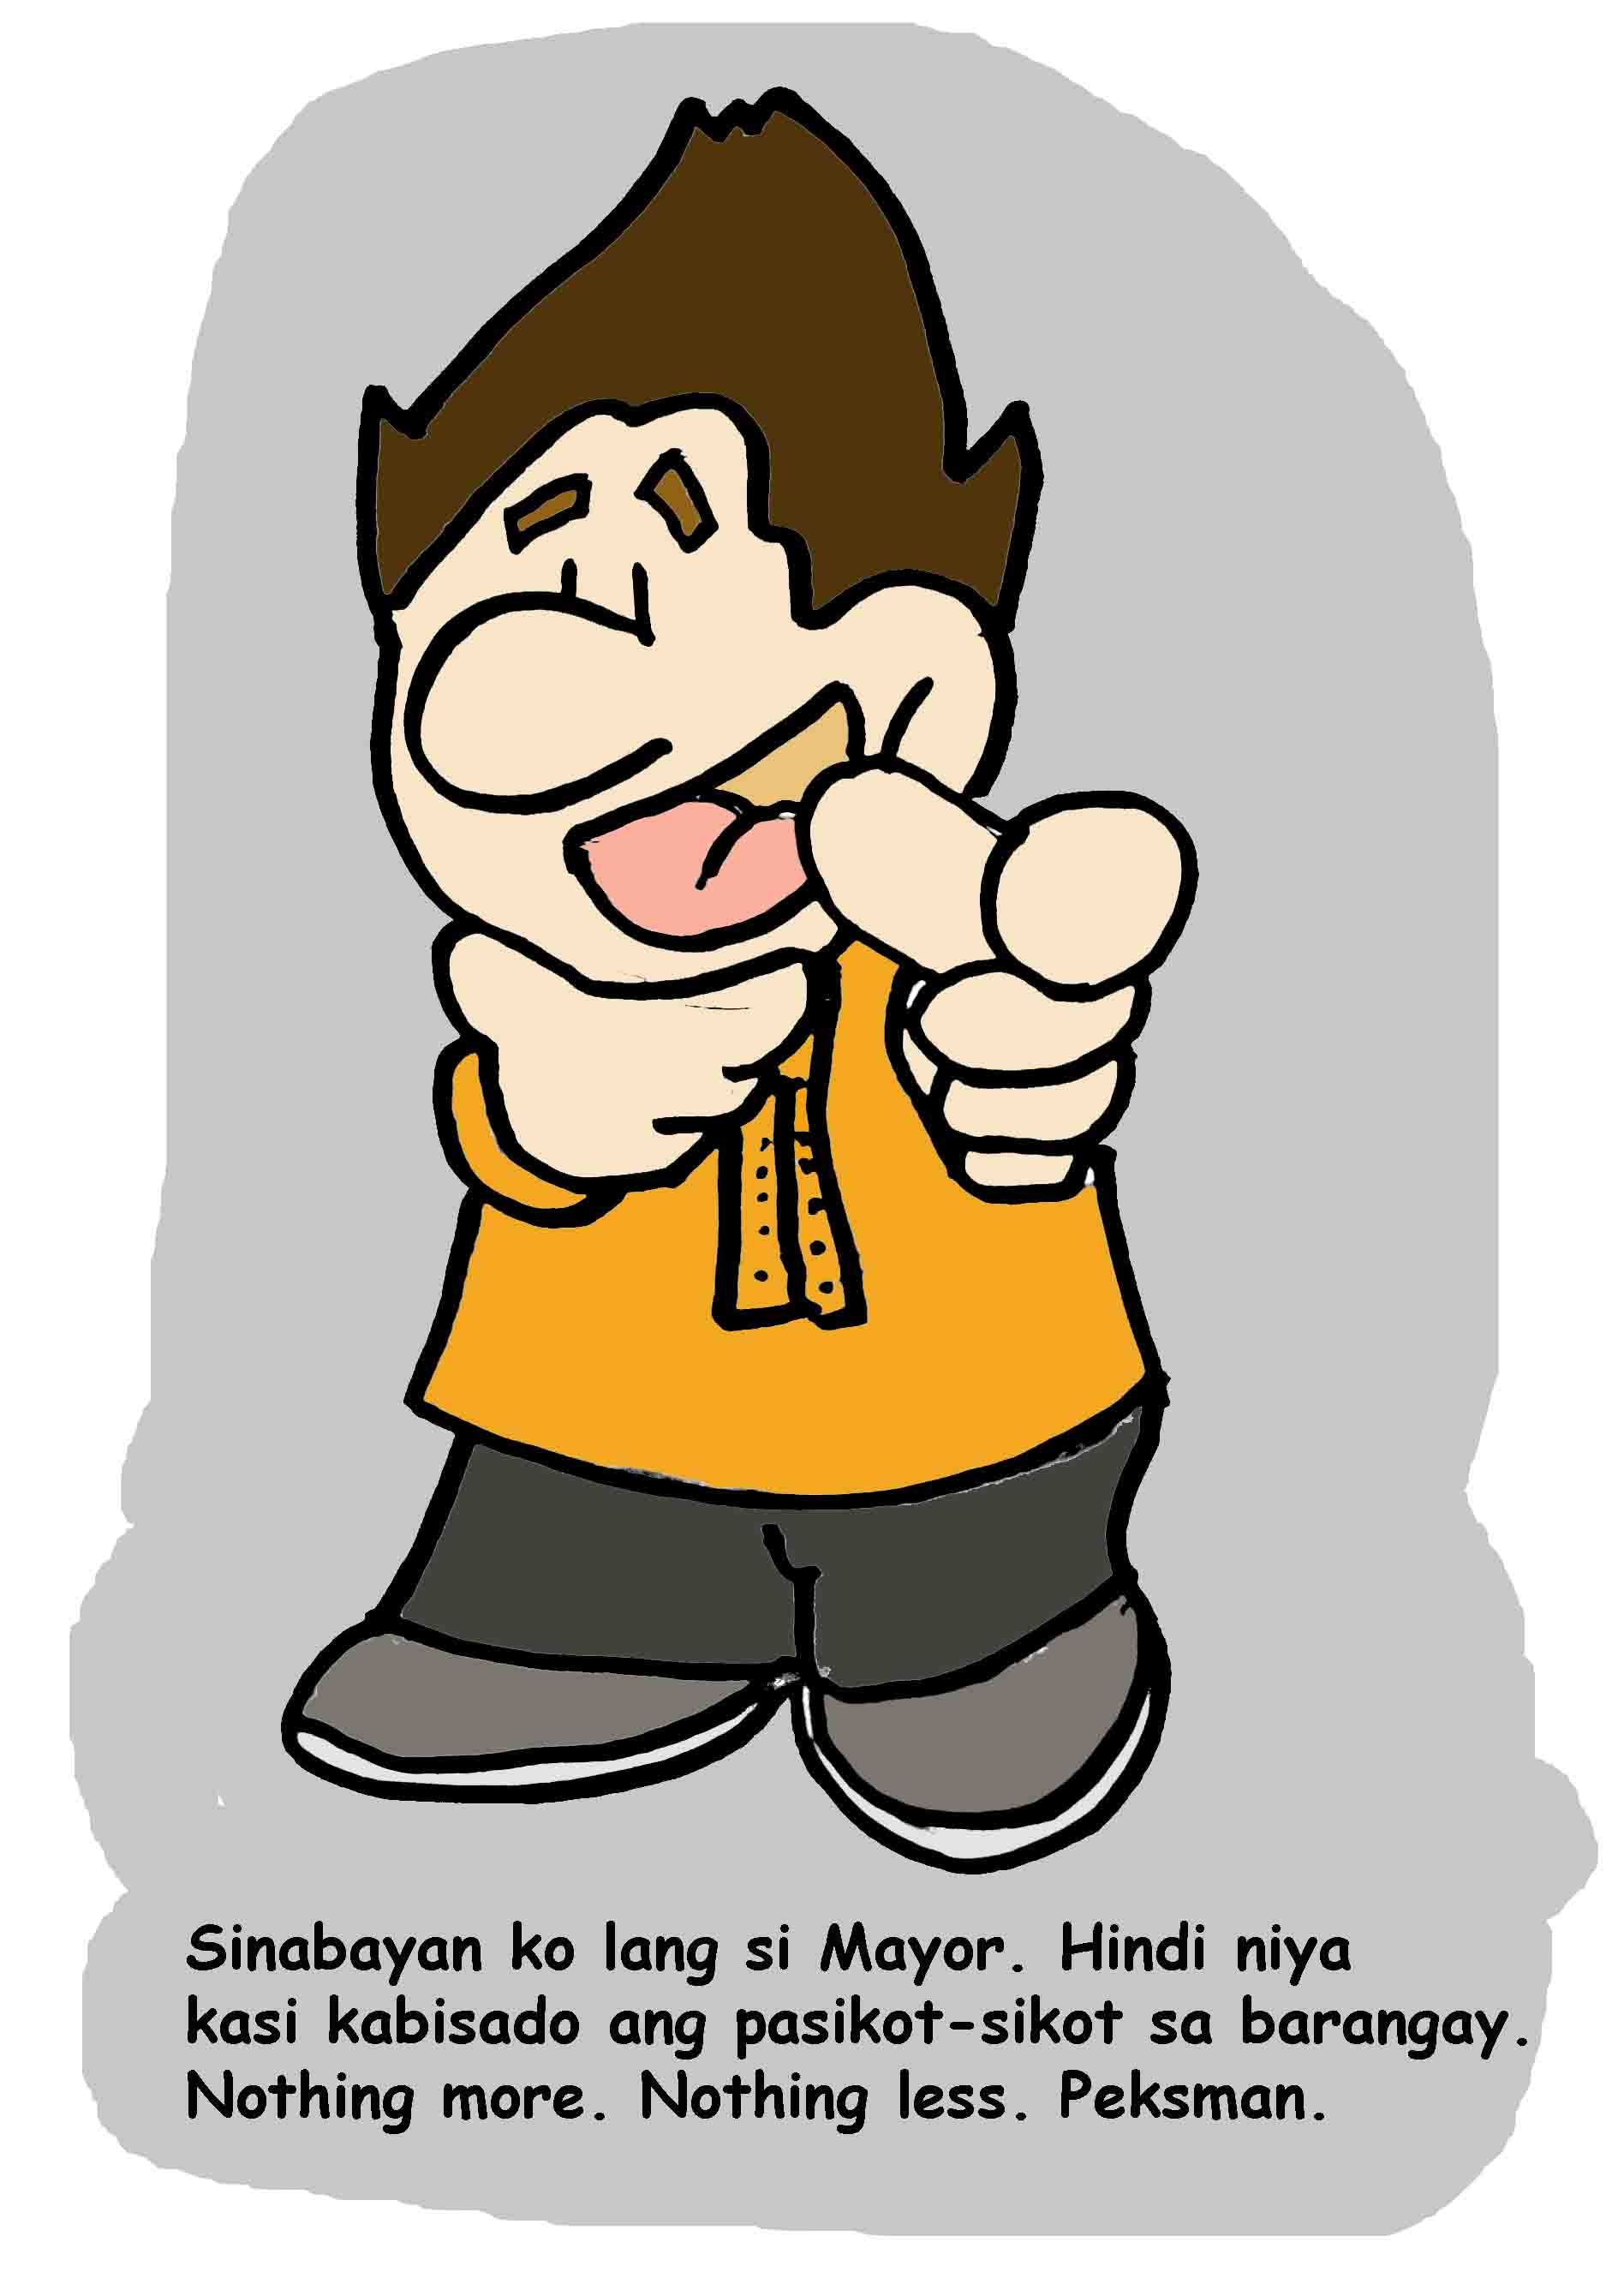 Barangay officials barred from. Captain clipart brgy transparent download